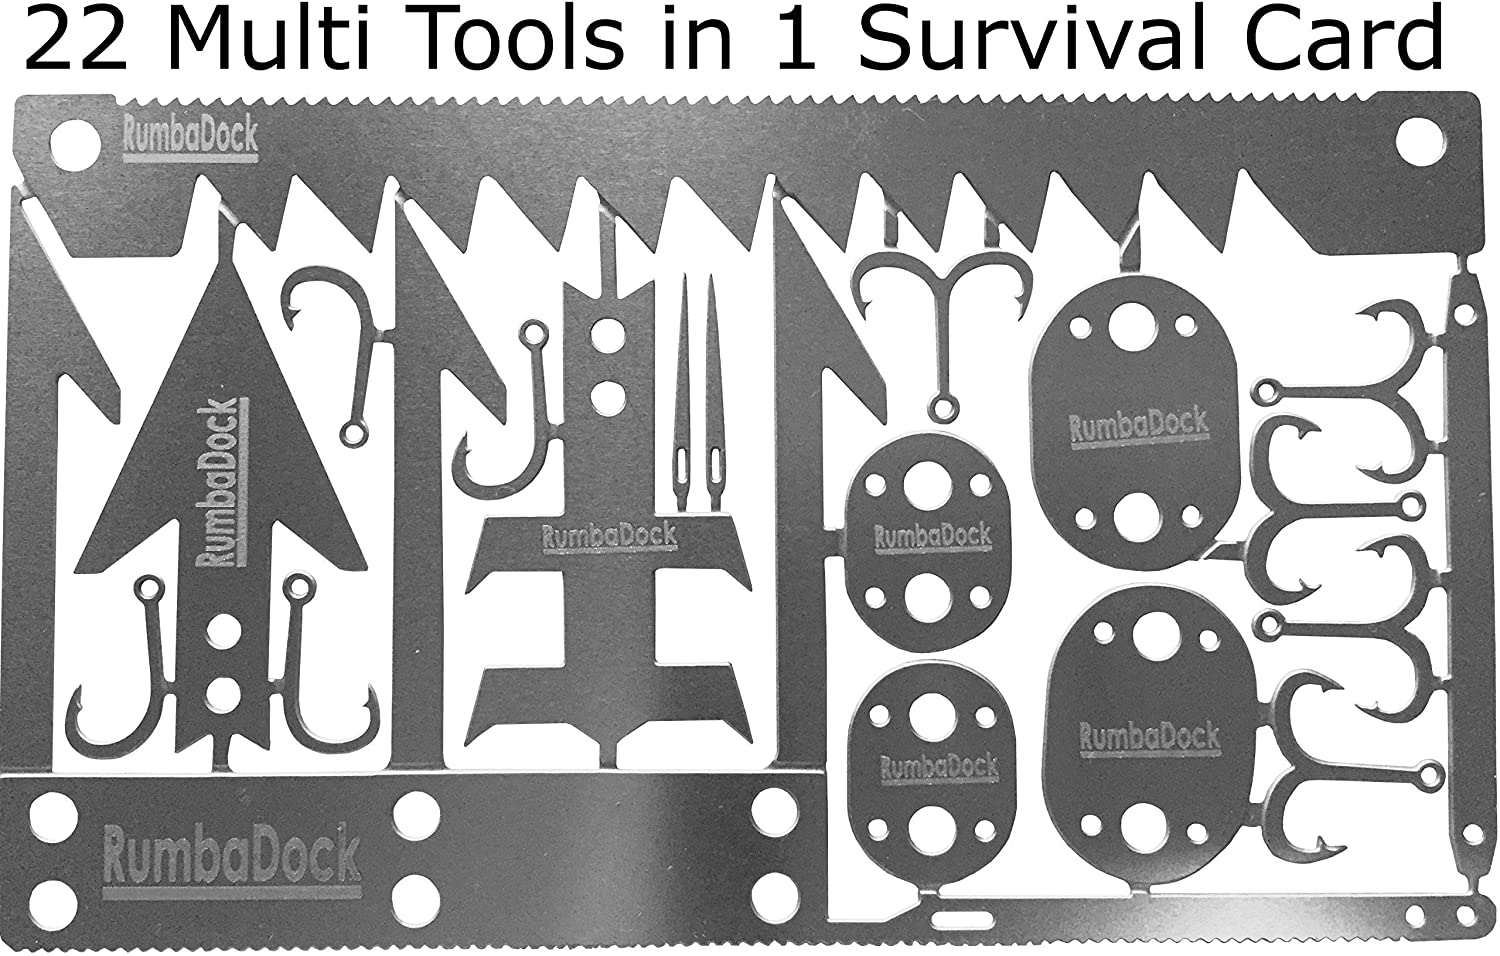 Survival MultiTool Card 3 TOOL PACK Bug Out Bag CampingTool 3 Best Multi tools for Camping and Wilderness Survival Preppers Gear Fishing Camping Hiking Hunting Emergency Kit Lifetime Guarantee